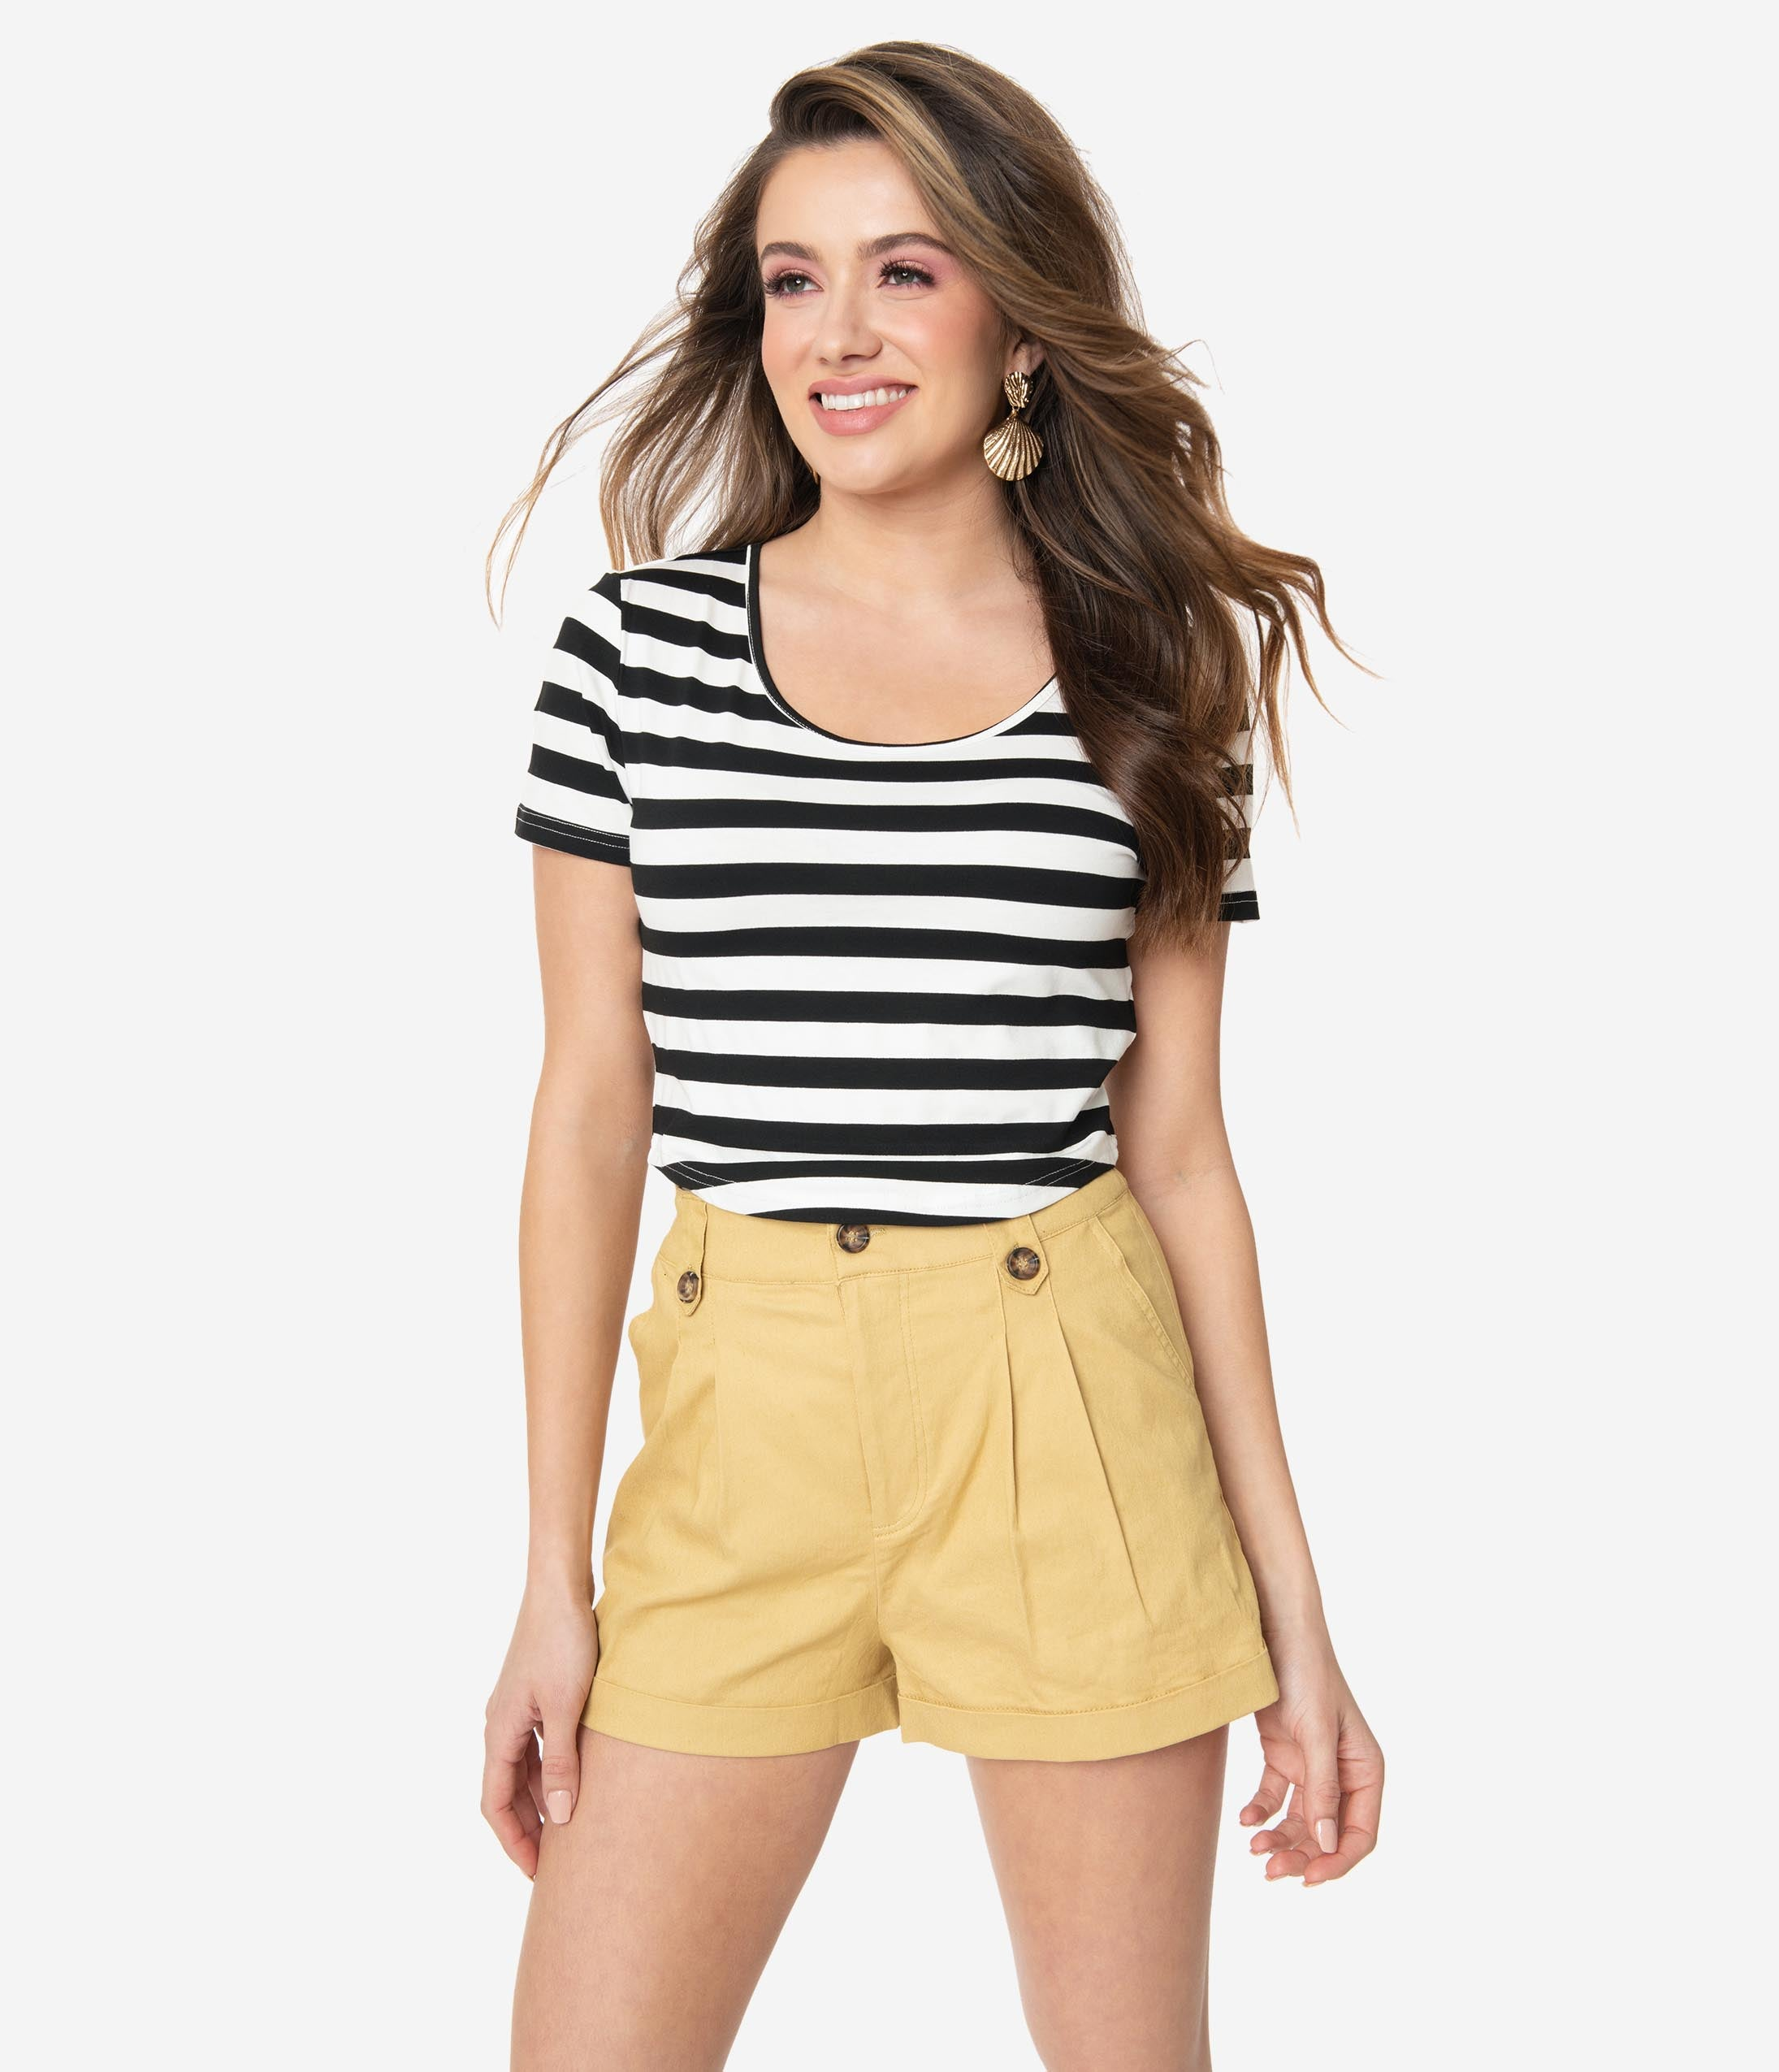 Vintage High Waisted Shorts, Sailor Shorts, Retro Shorts Mustard Yellow Pleated High Waist Shorts $38.00 AT vintagedancer.com